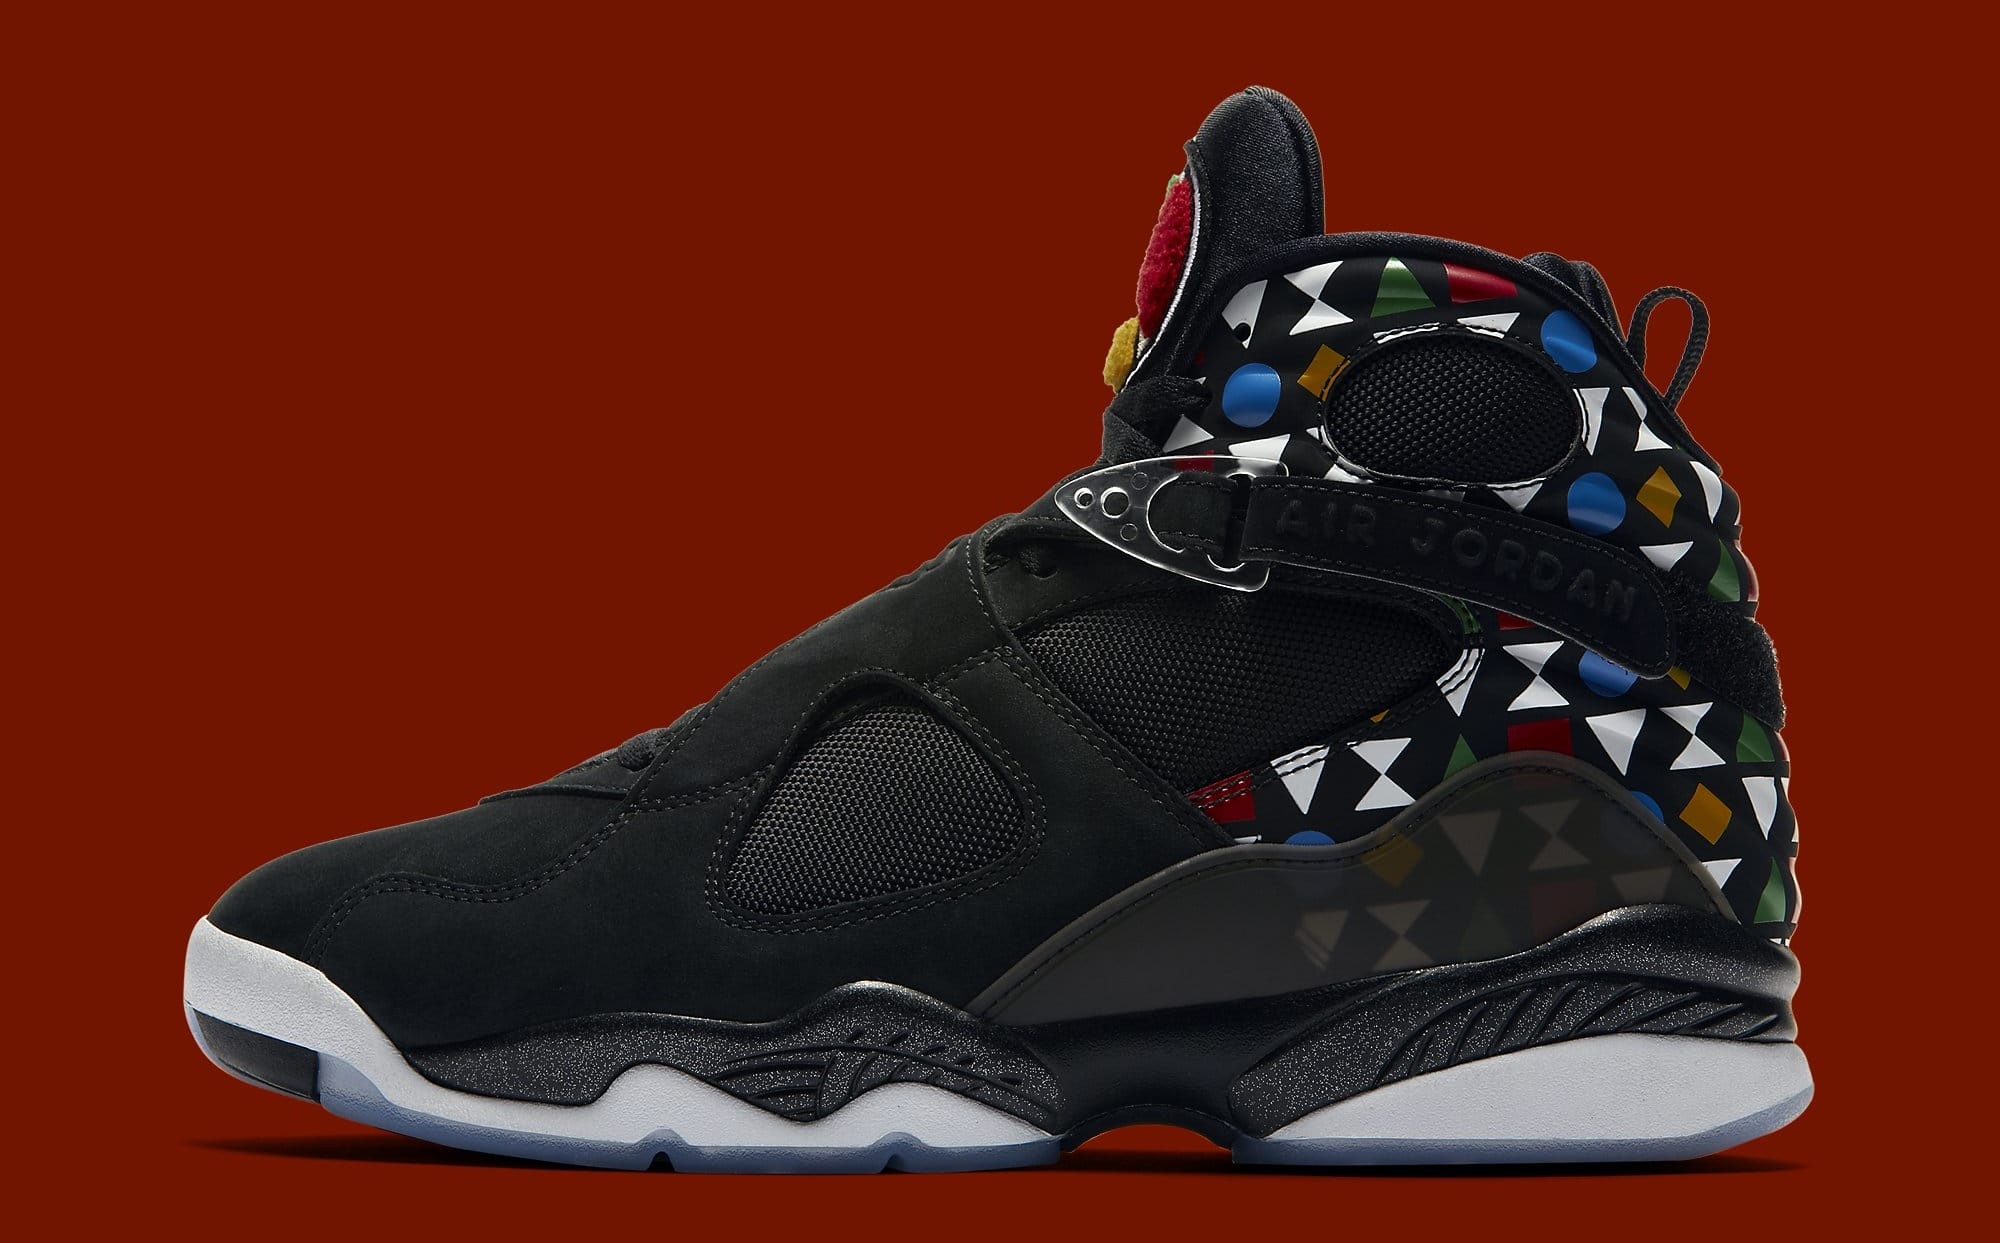 Air Jordan 8 Retro 'Quai 54' CJ9218-001 Lateral